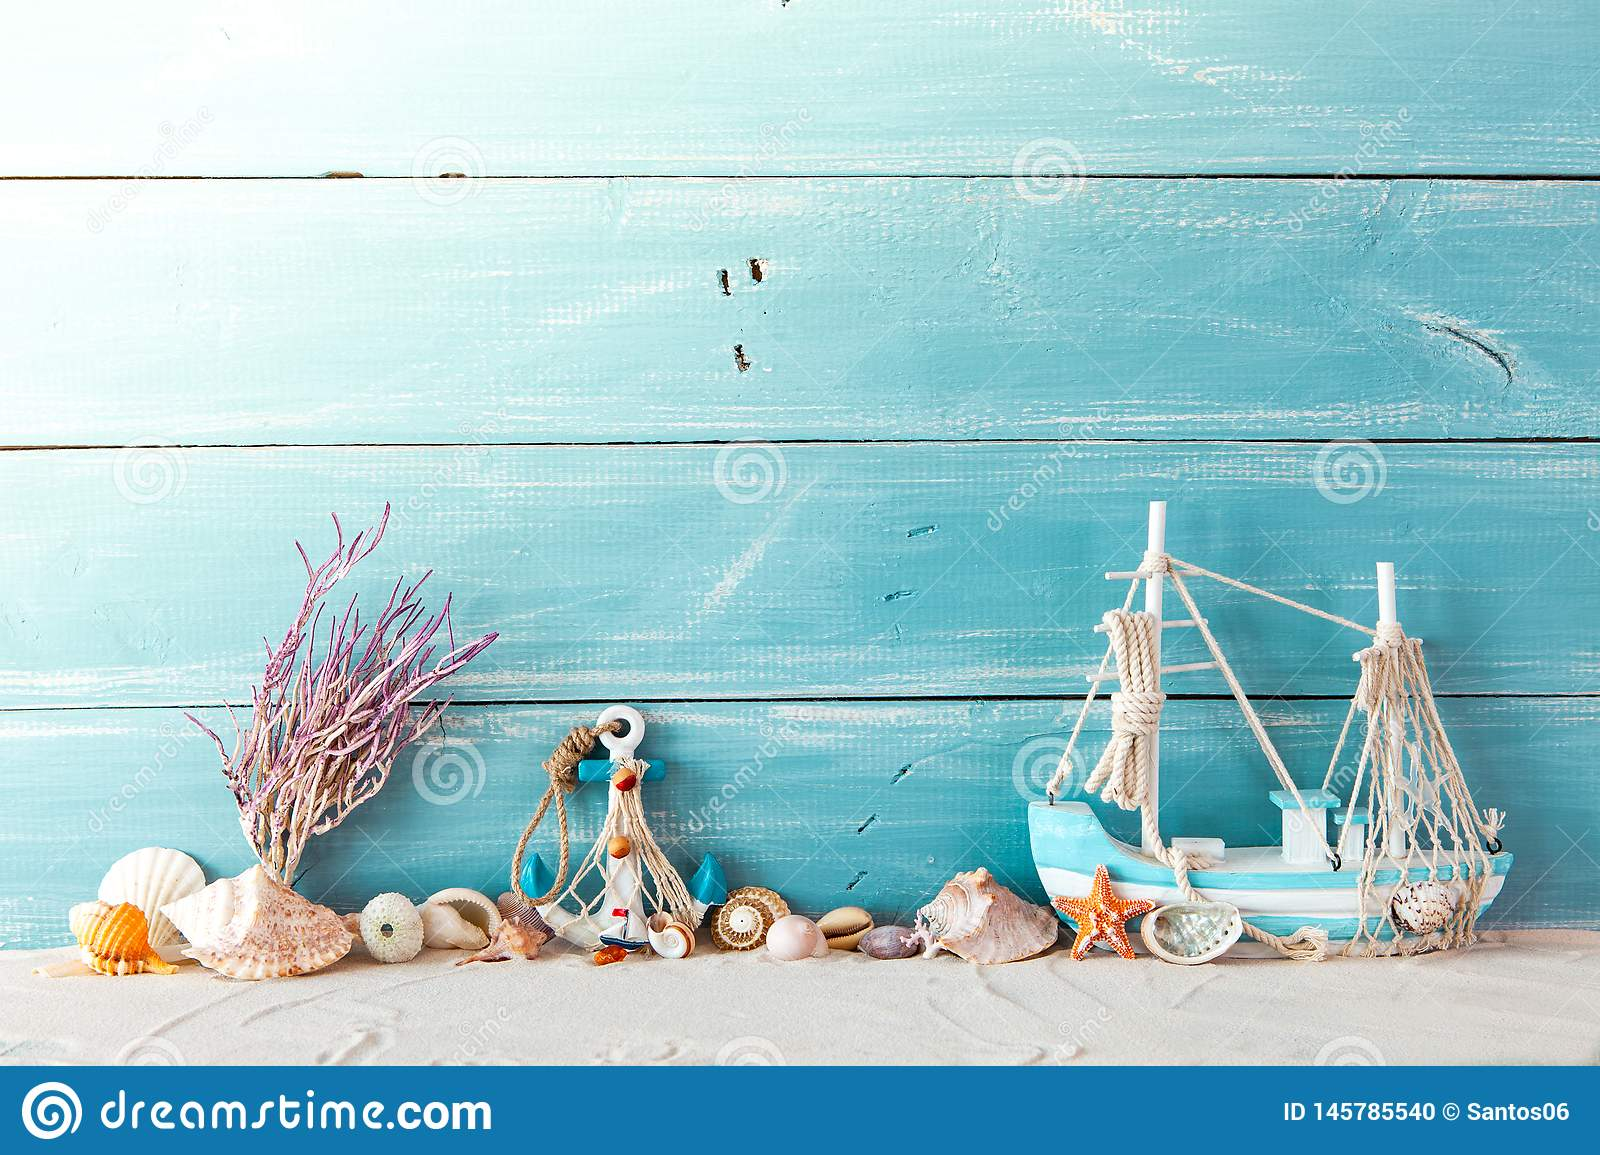 Maritime background